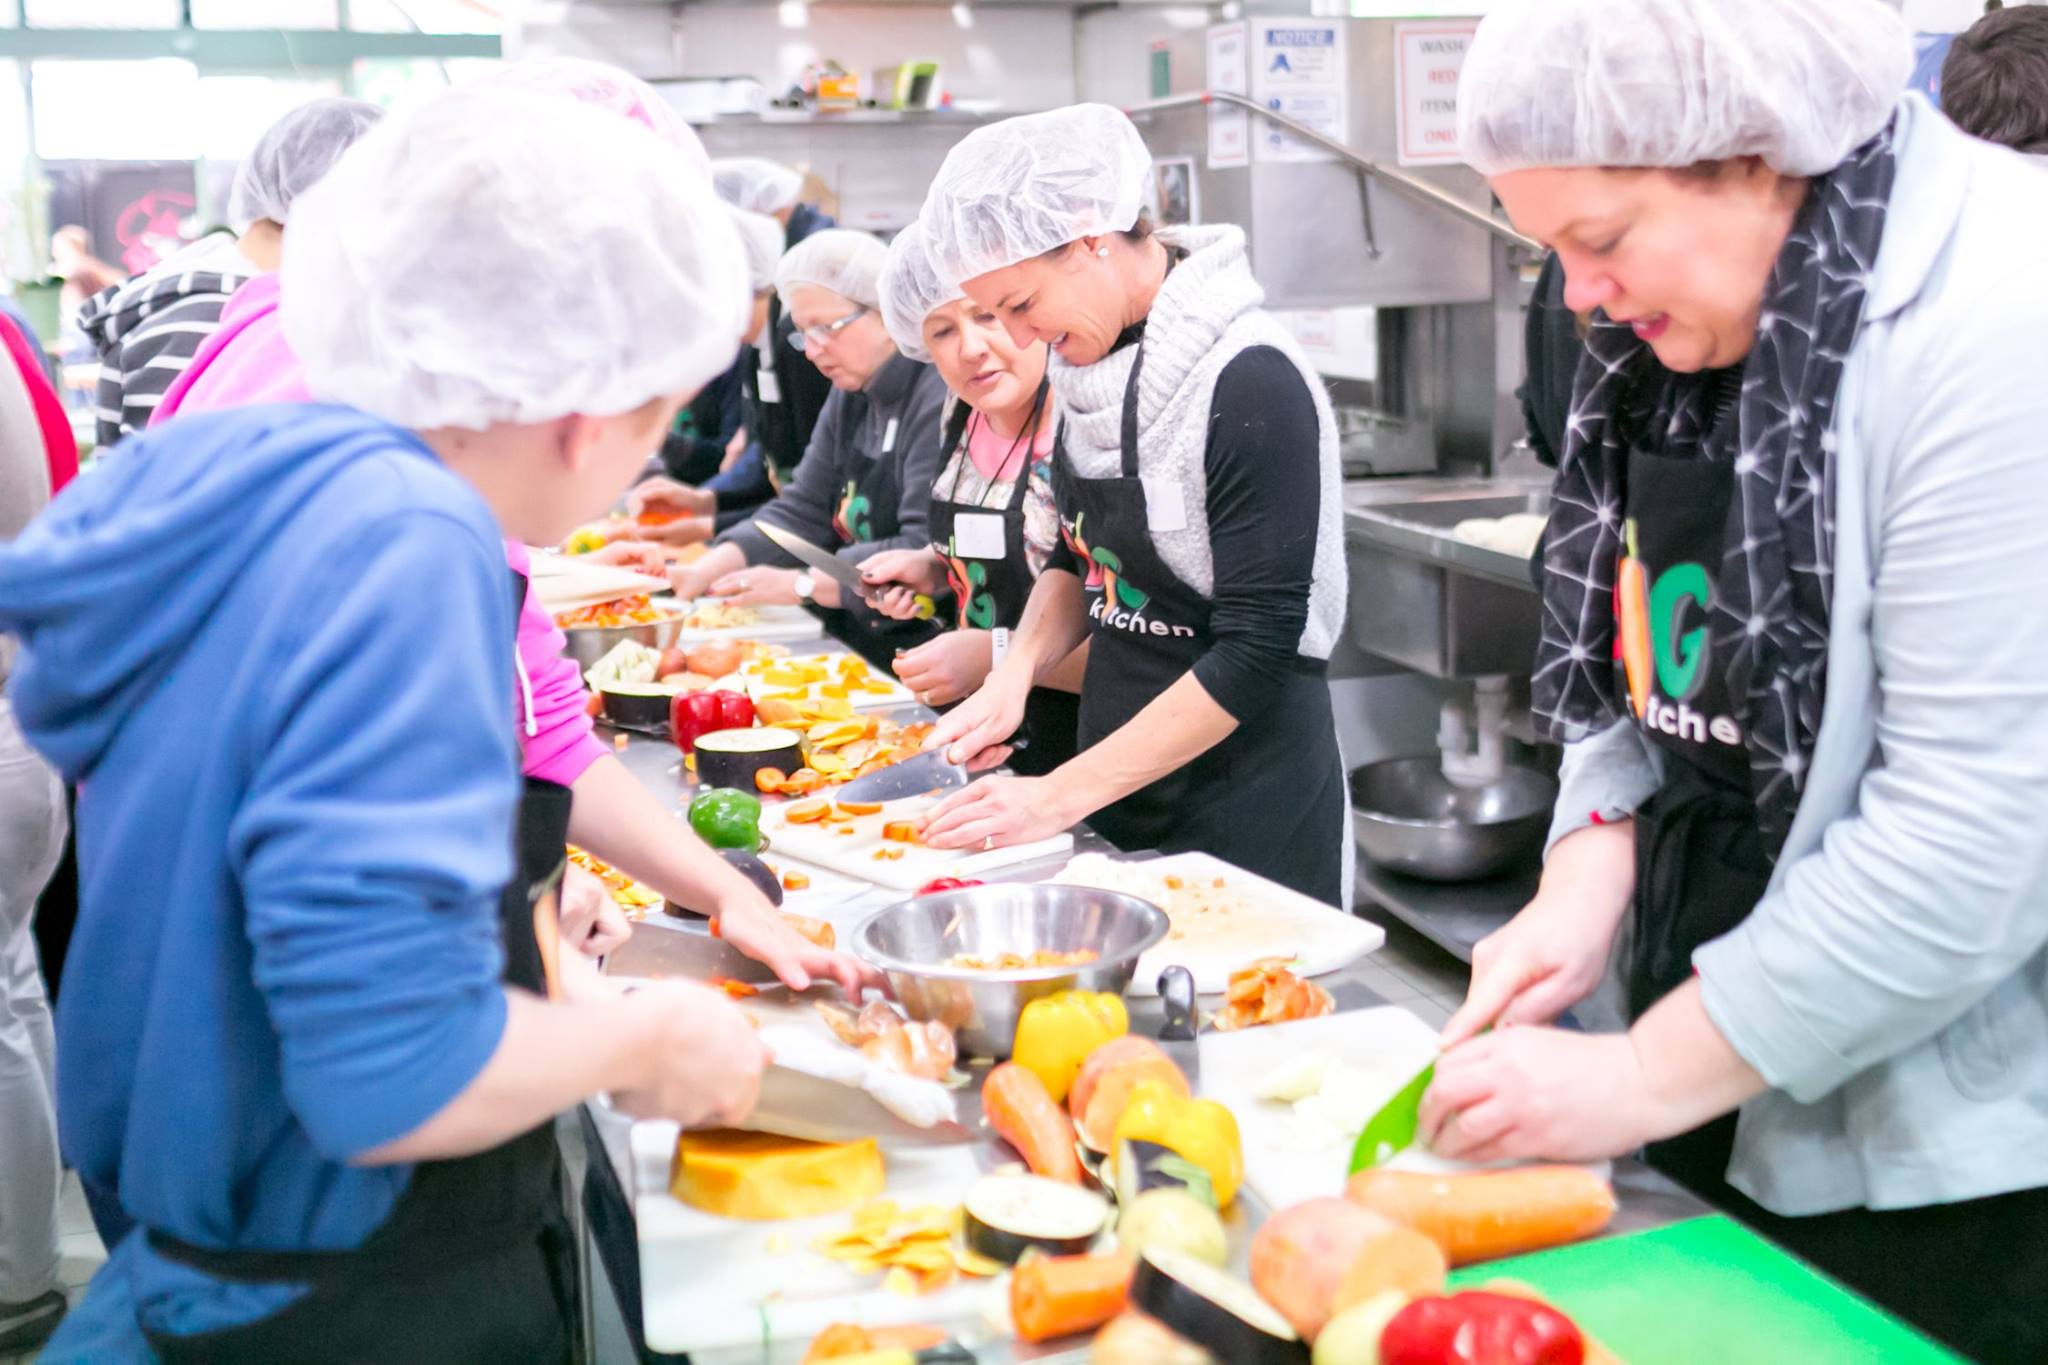 Adults and teens in the kitchen helping to prepare hot meals